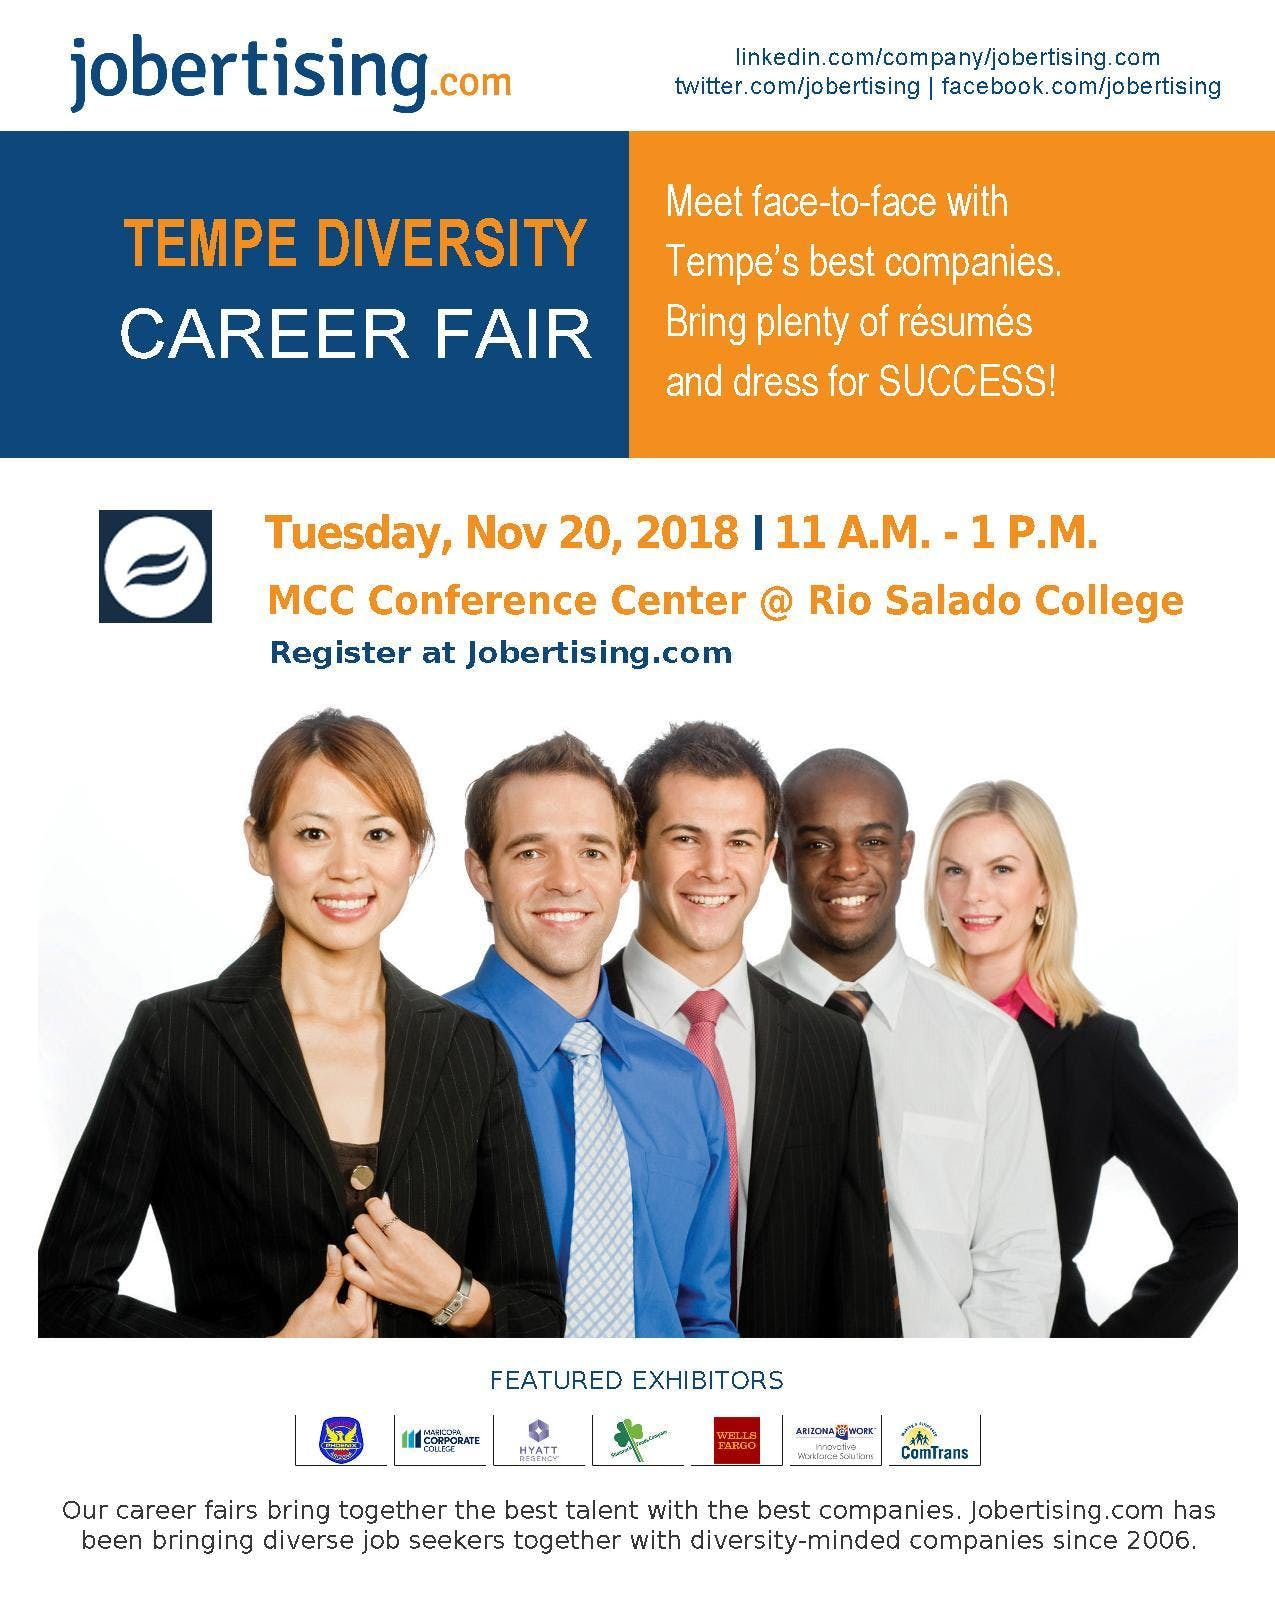 Tempe Career Fair